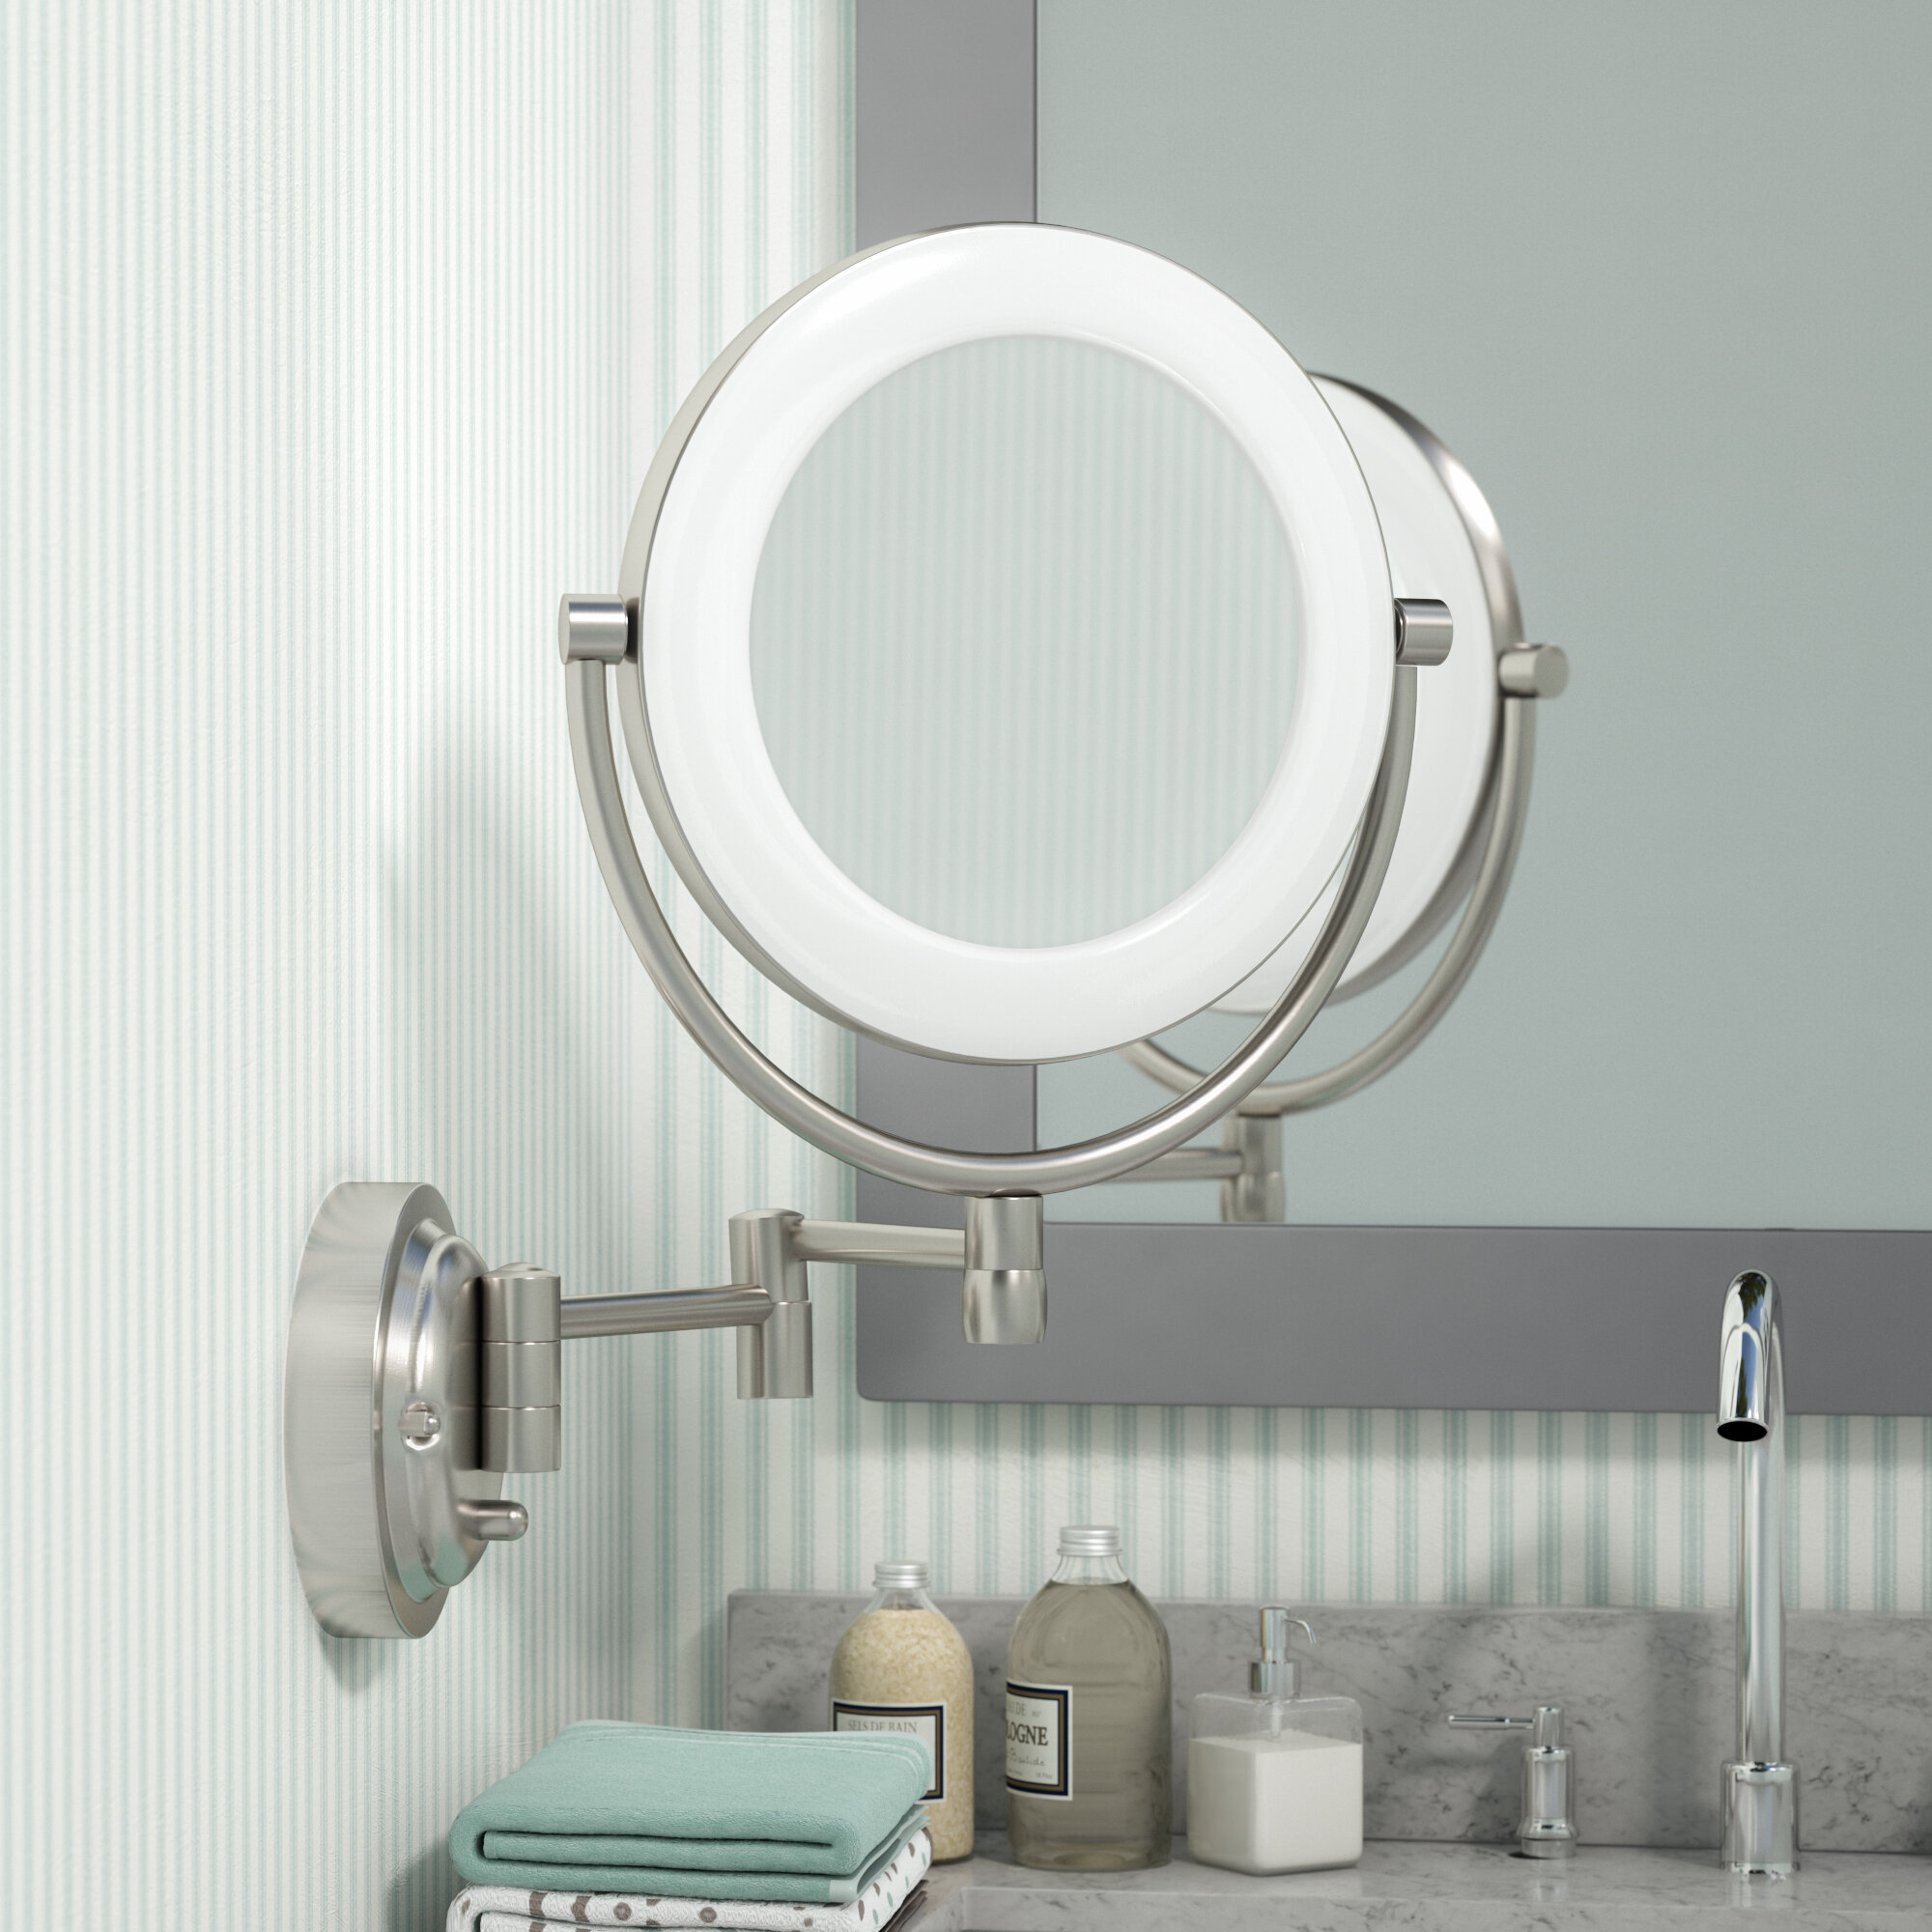 Magnificent Hansa Faucets Image Faucet Products austinmartin